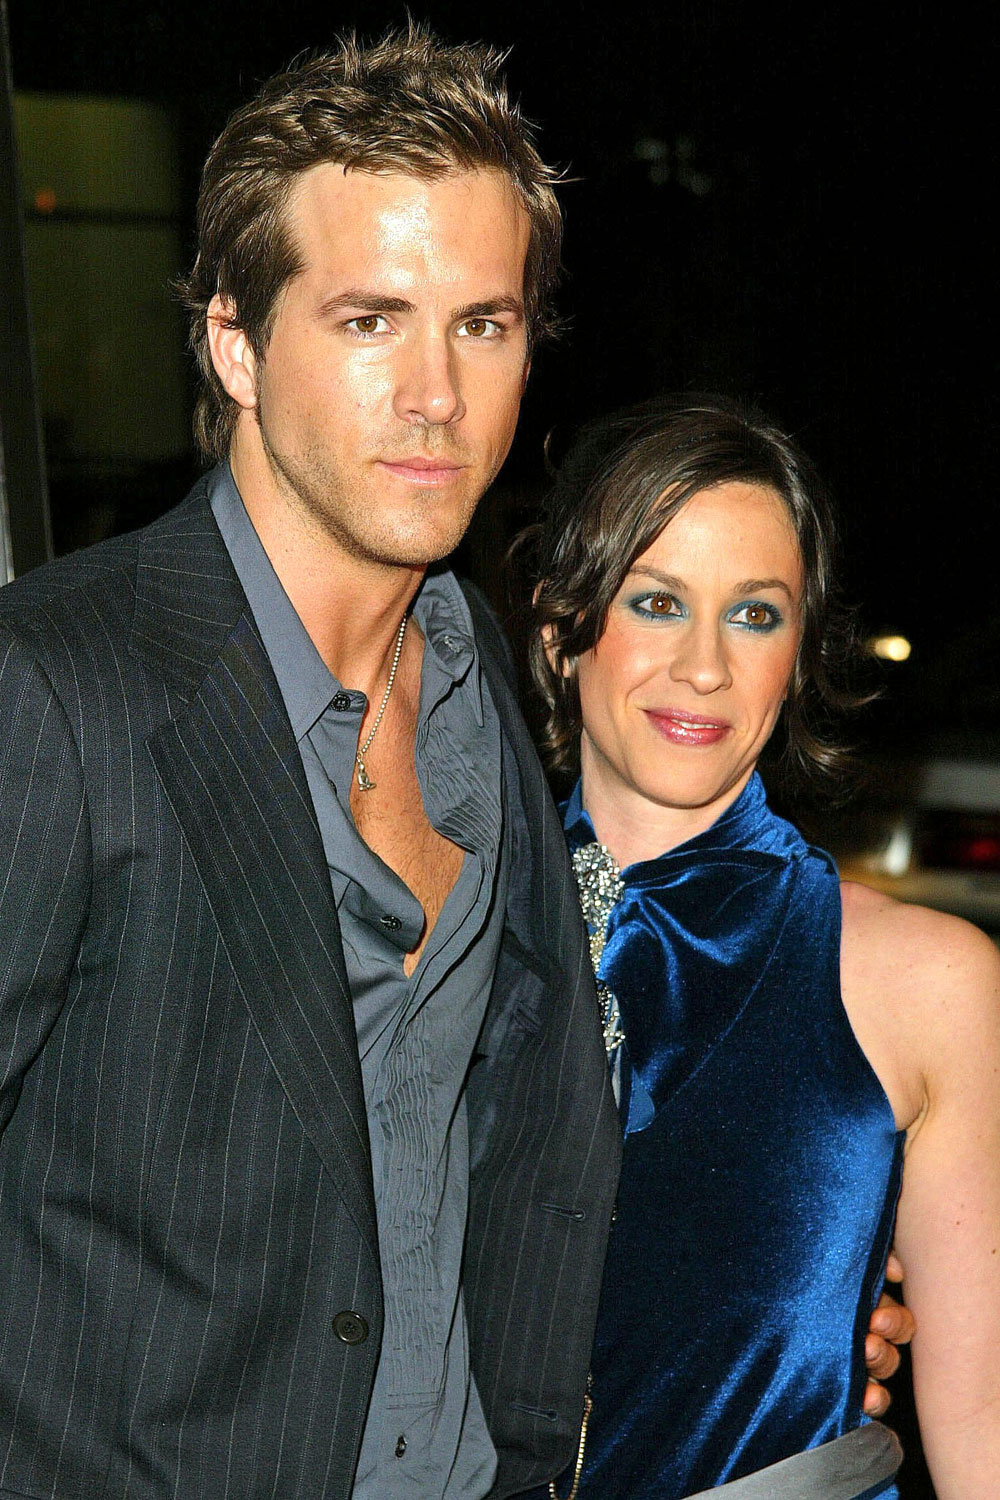 Alanis Morissette: When someone says I'm angry, it's a compliment' pictures